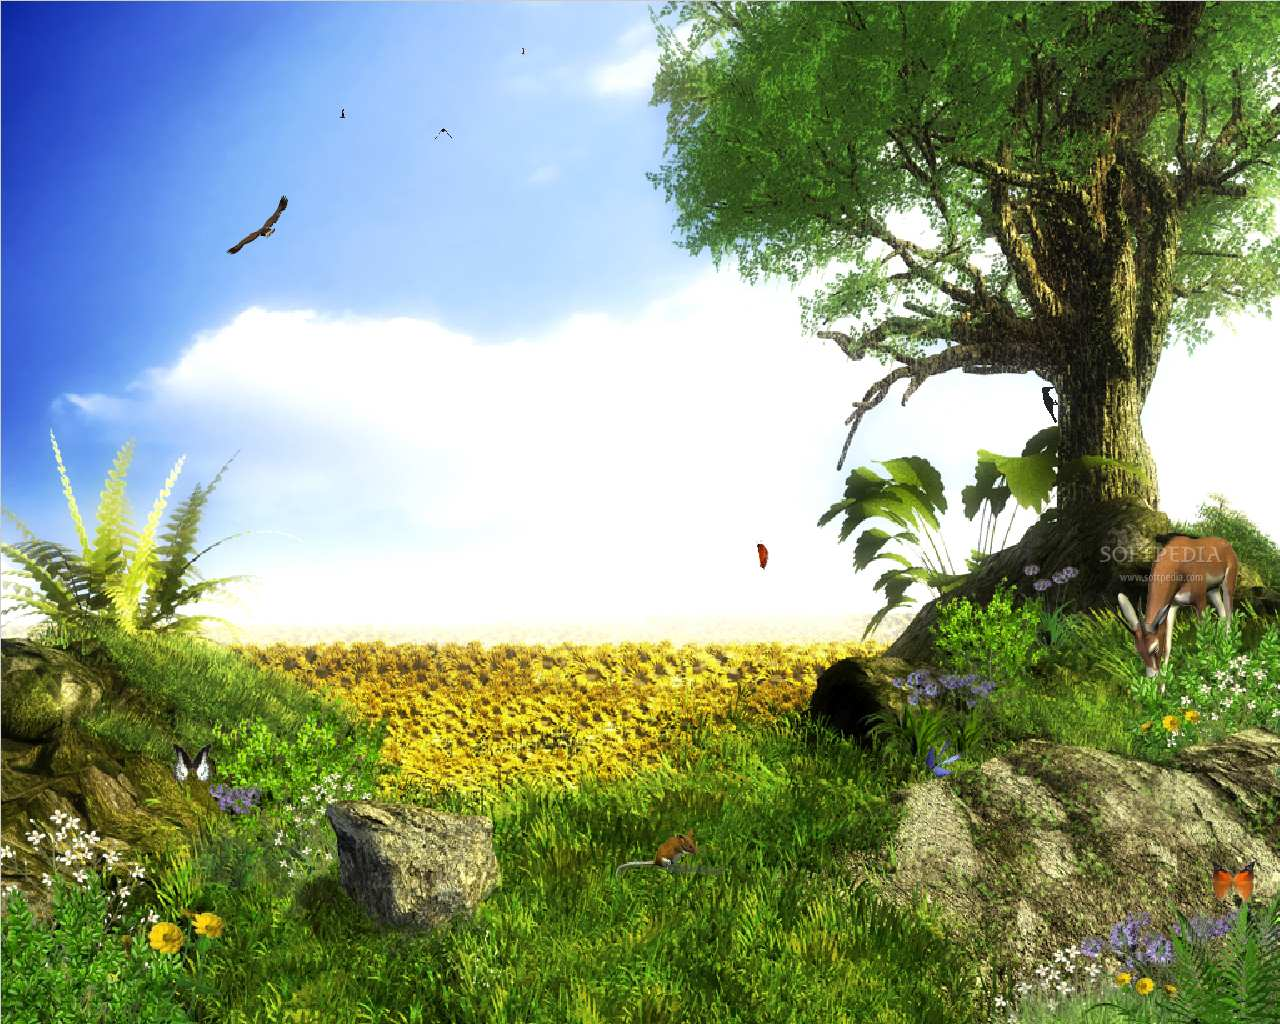 Wallpaper for Mac 3d Animated Desktop Wallpapers for Download 1280x1024